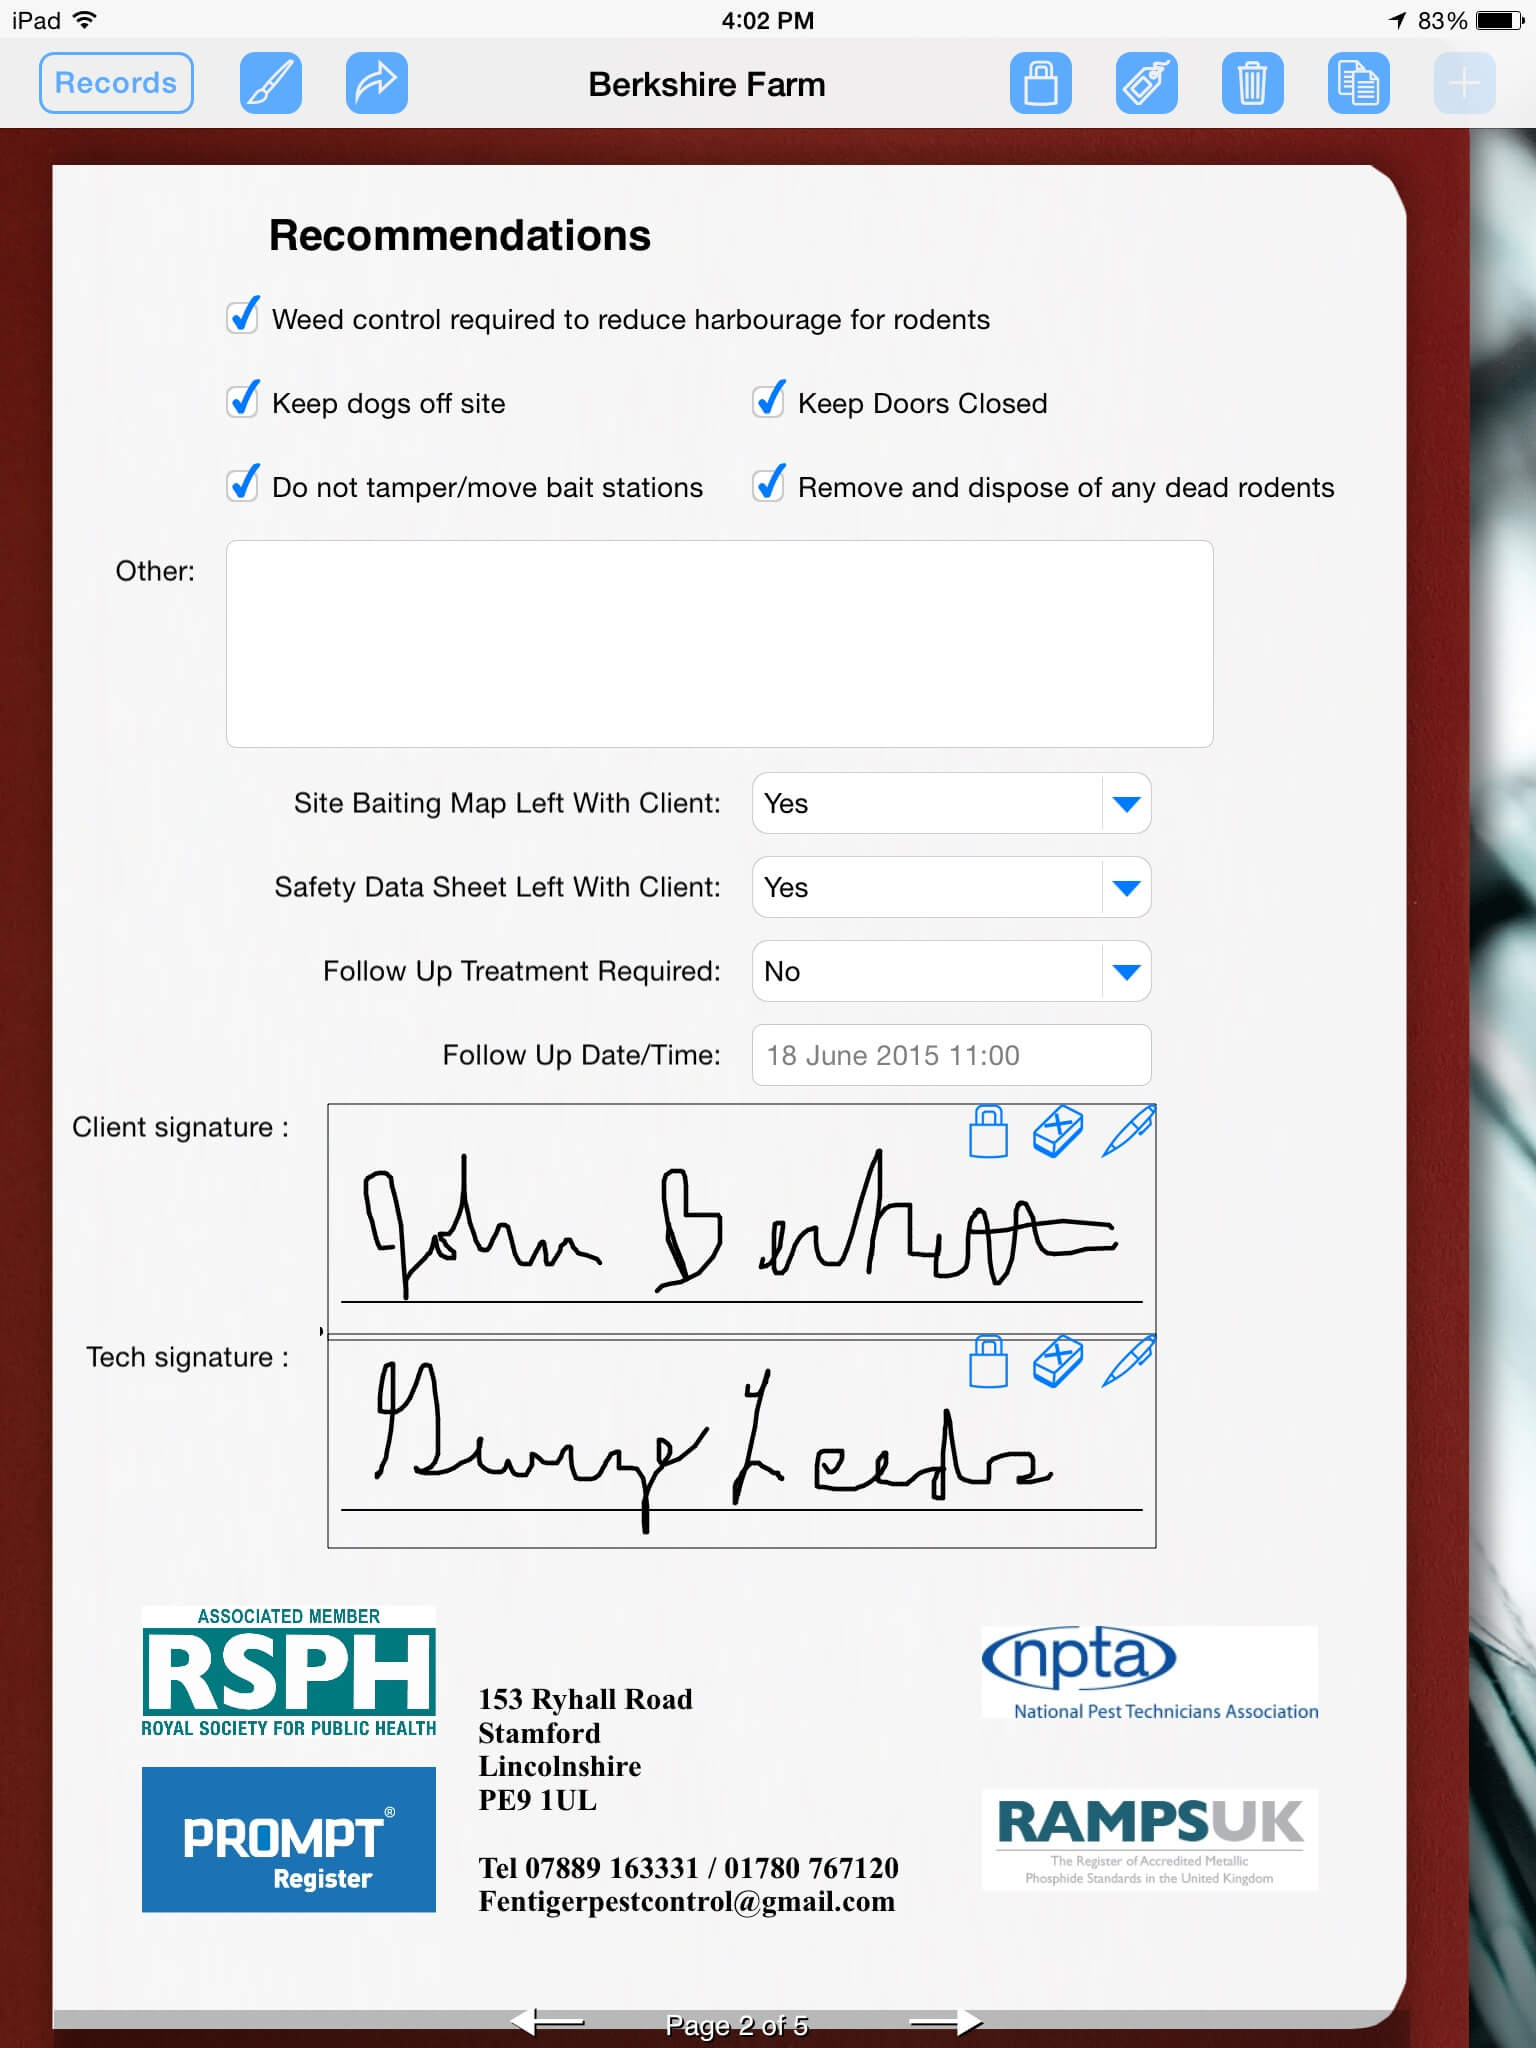 Pest Control Uses Ipad To Prepare Service Report | Form With Regard To Pest Control Inspection Report Template